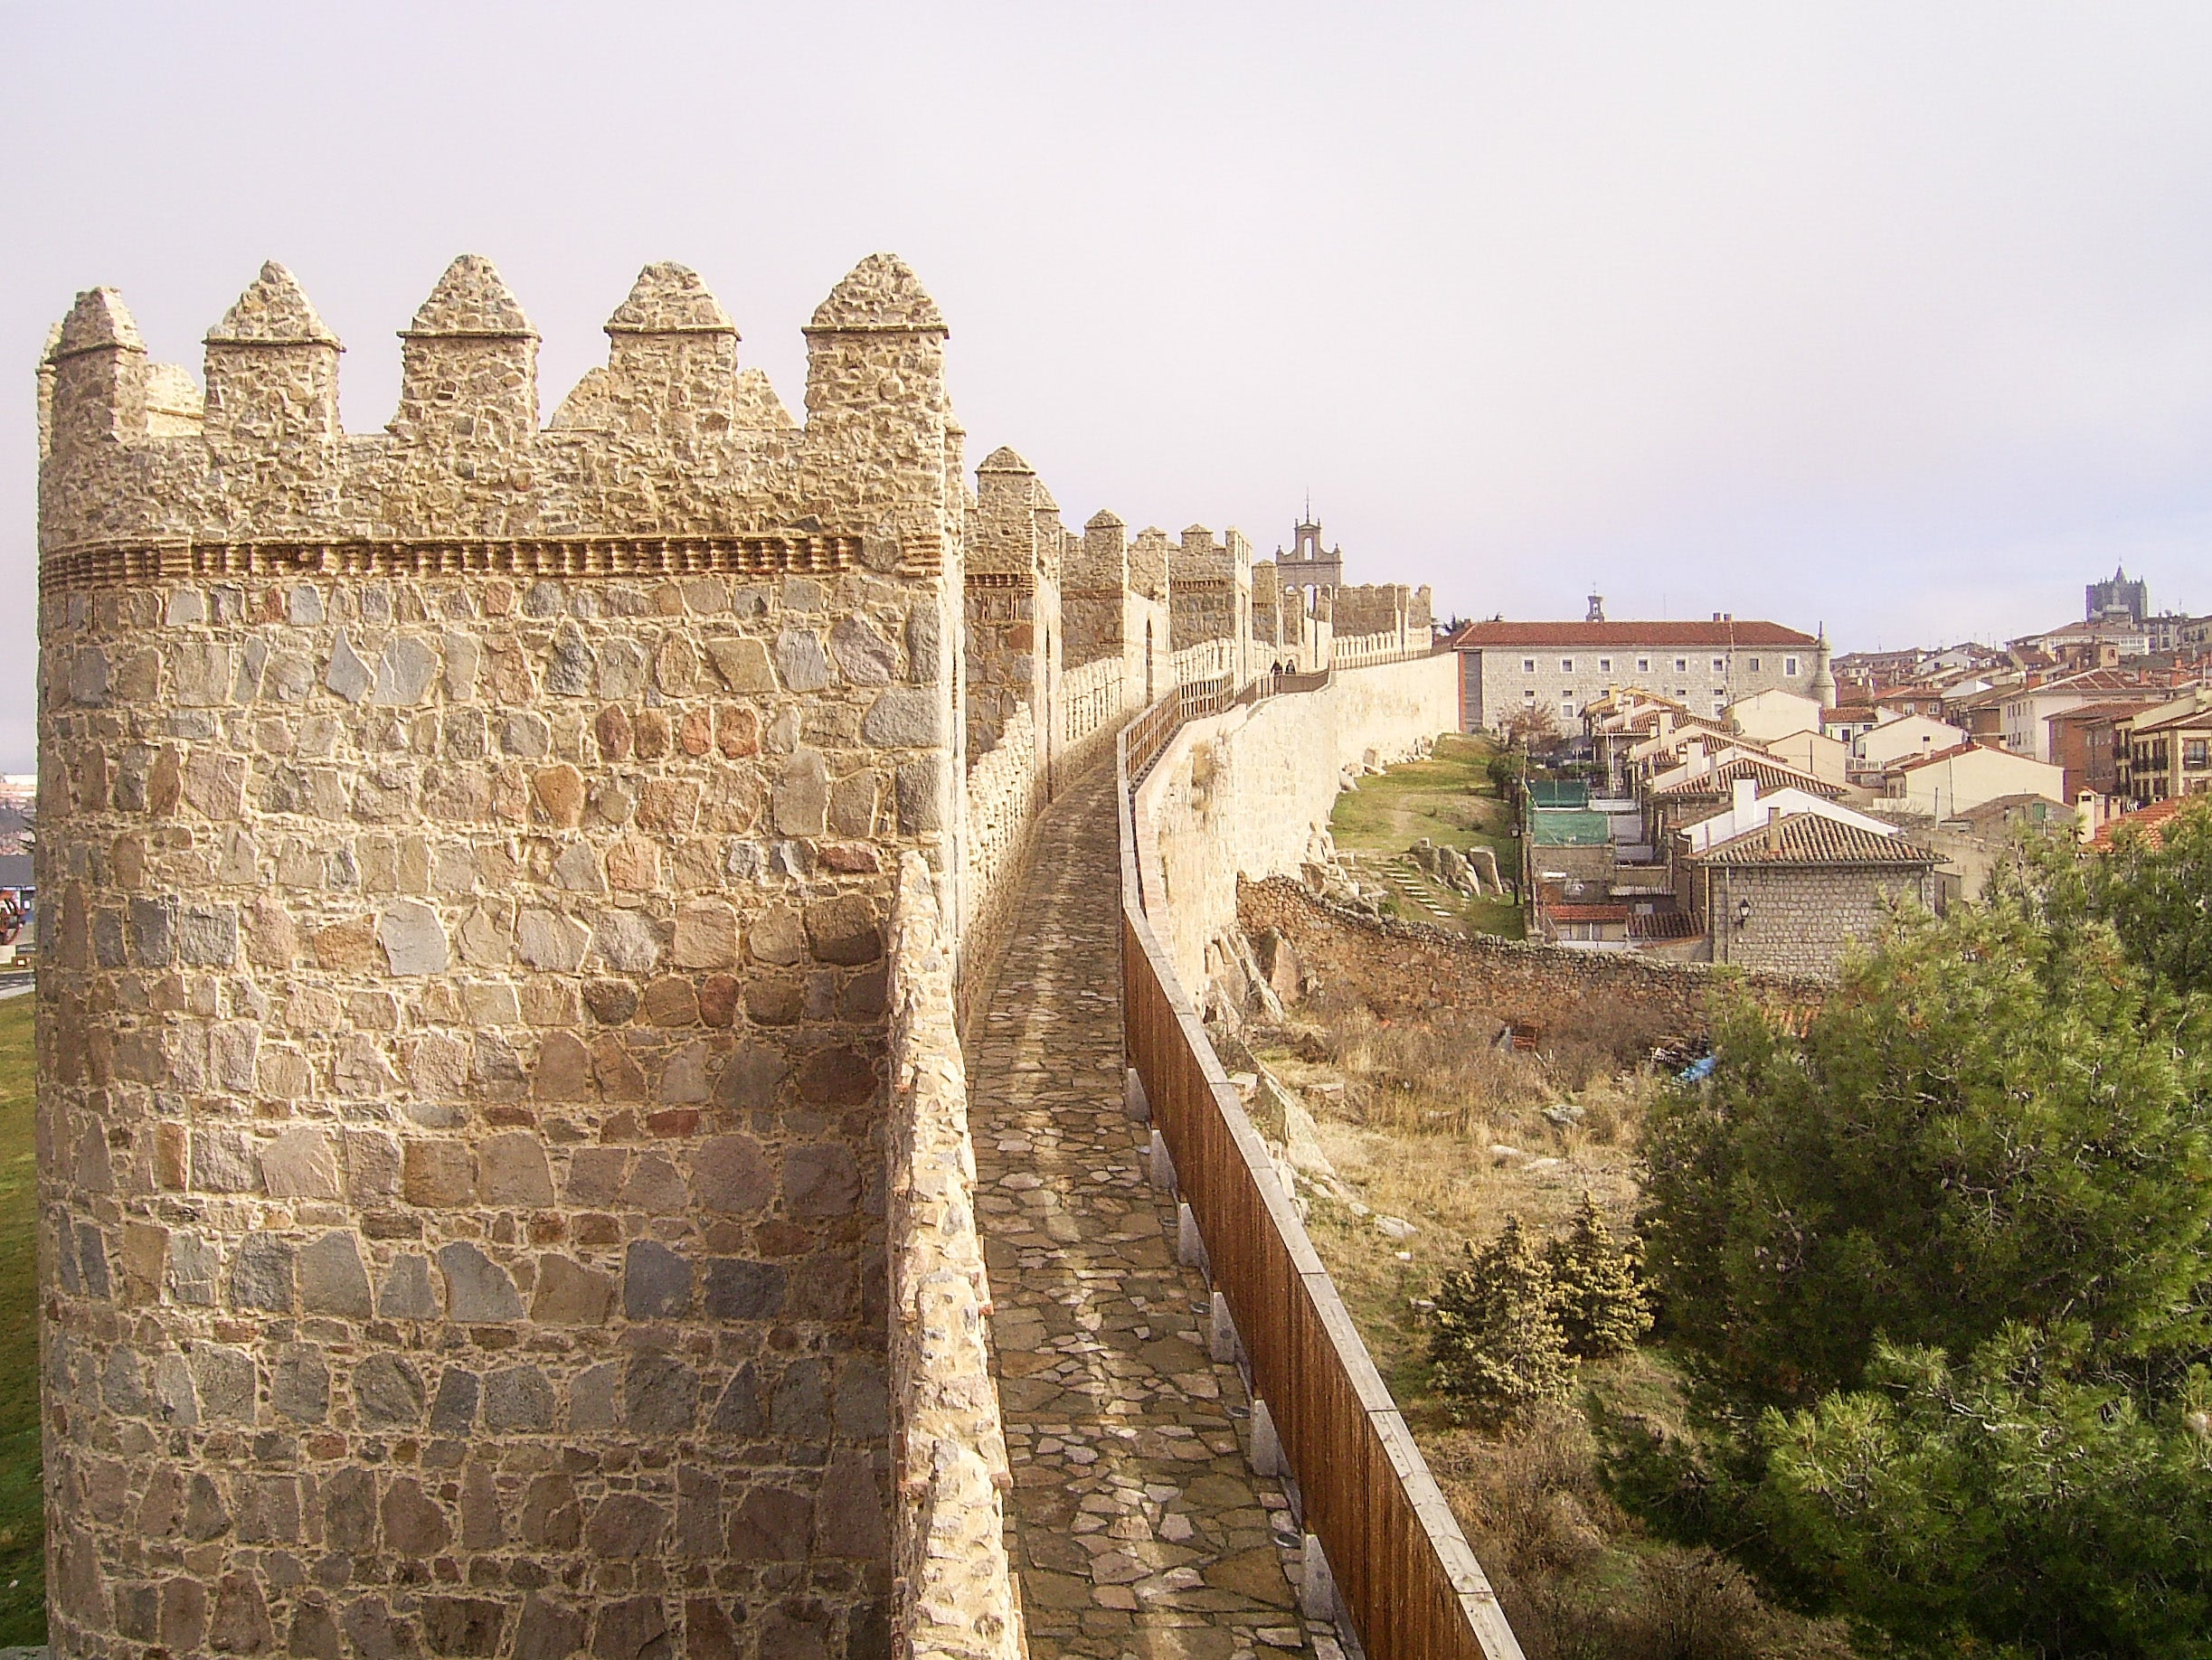 photos of walls of Ávila images